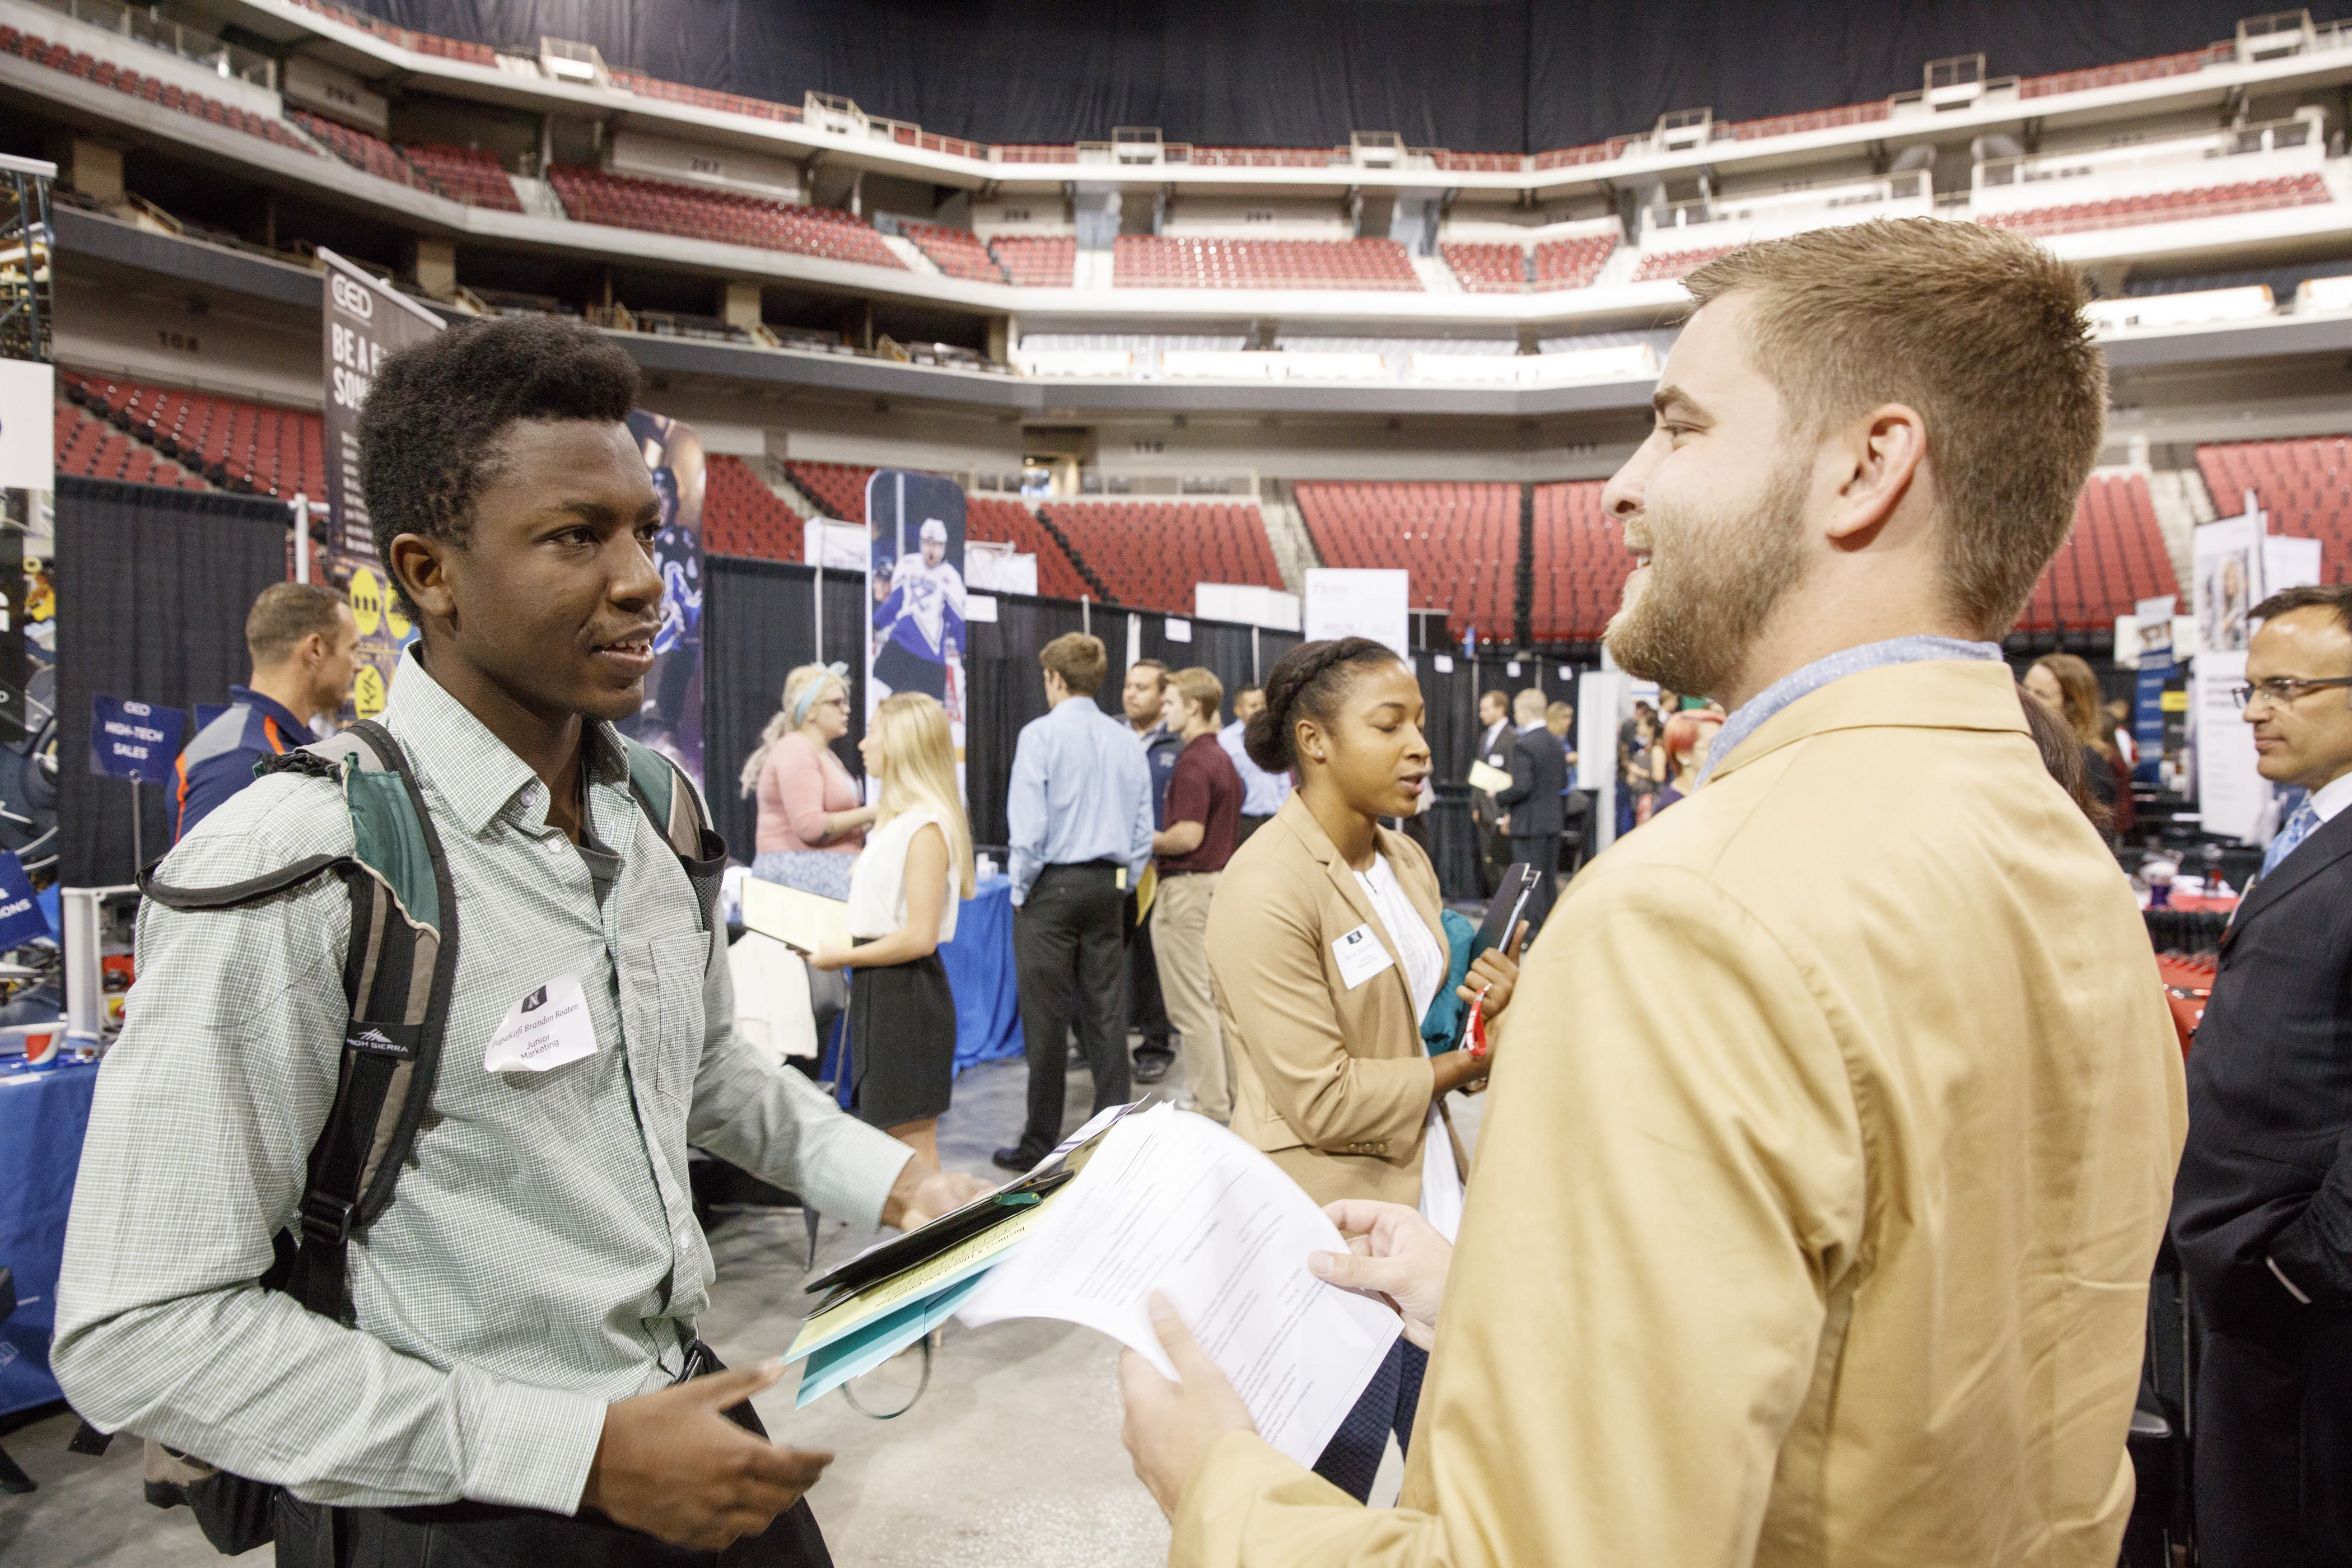 Network with employers at the Business & Liberal Arts fair.